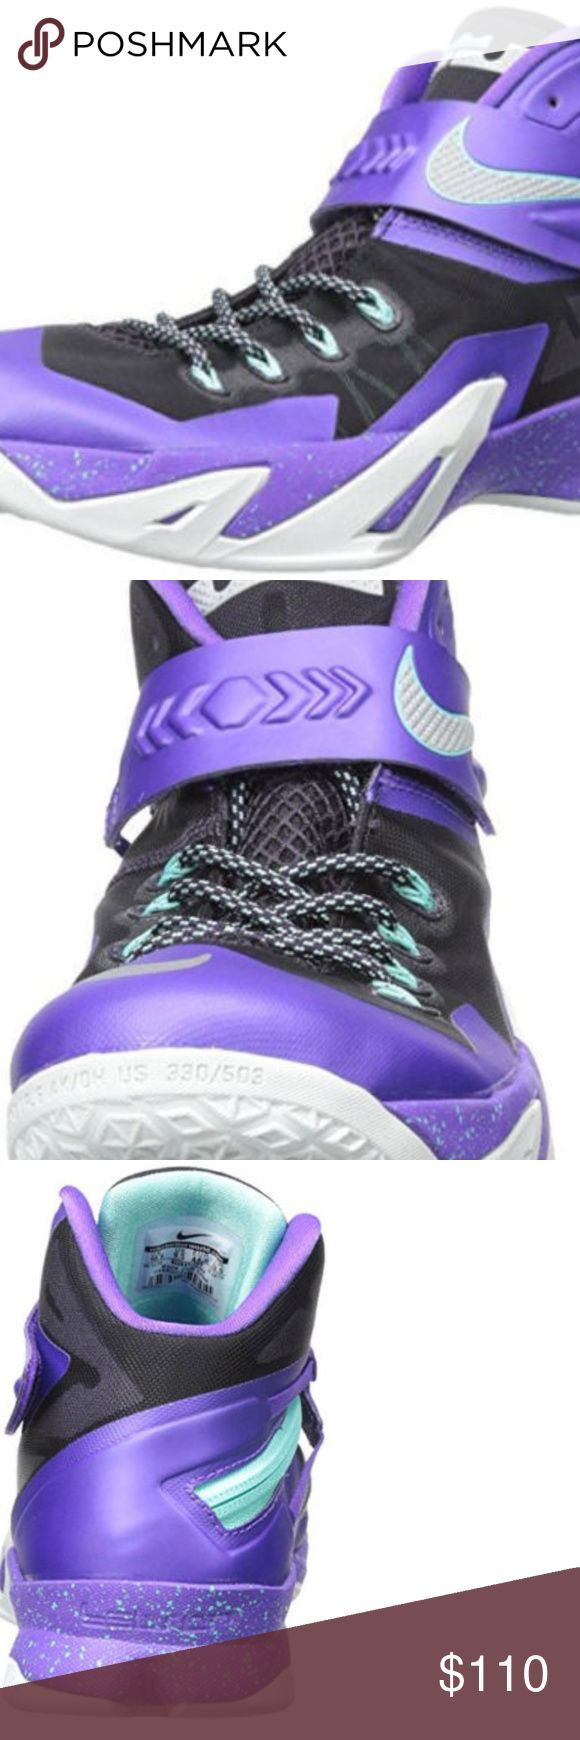 """Nike Mens Zoom Soldier VIII Prm Basketball Shoes Nike Mens Zoom Soldier VIII Prm Basketball Shoes Sneakers   Size: 12 Brand New In Box Synthetic Rubber sole Shaft measures approximately 4"""" from arch Made in China Color: Purple / Silver Nike Model: 653641070 Nike Shoes Sneakers"""